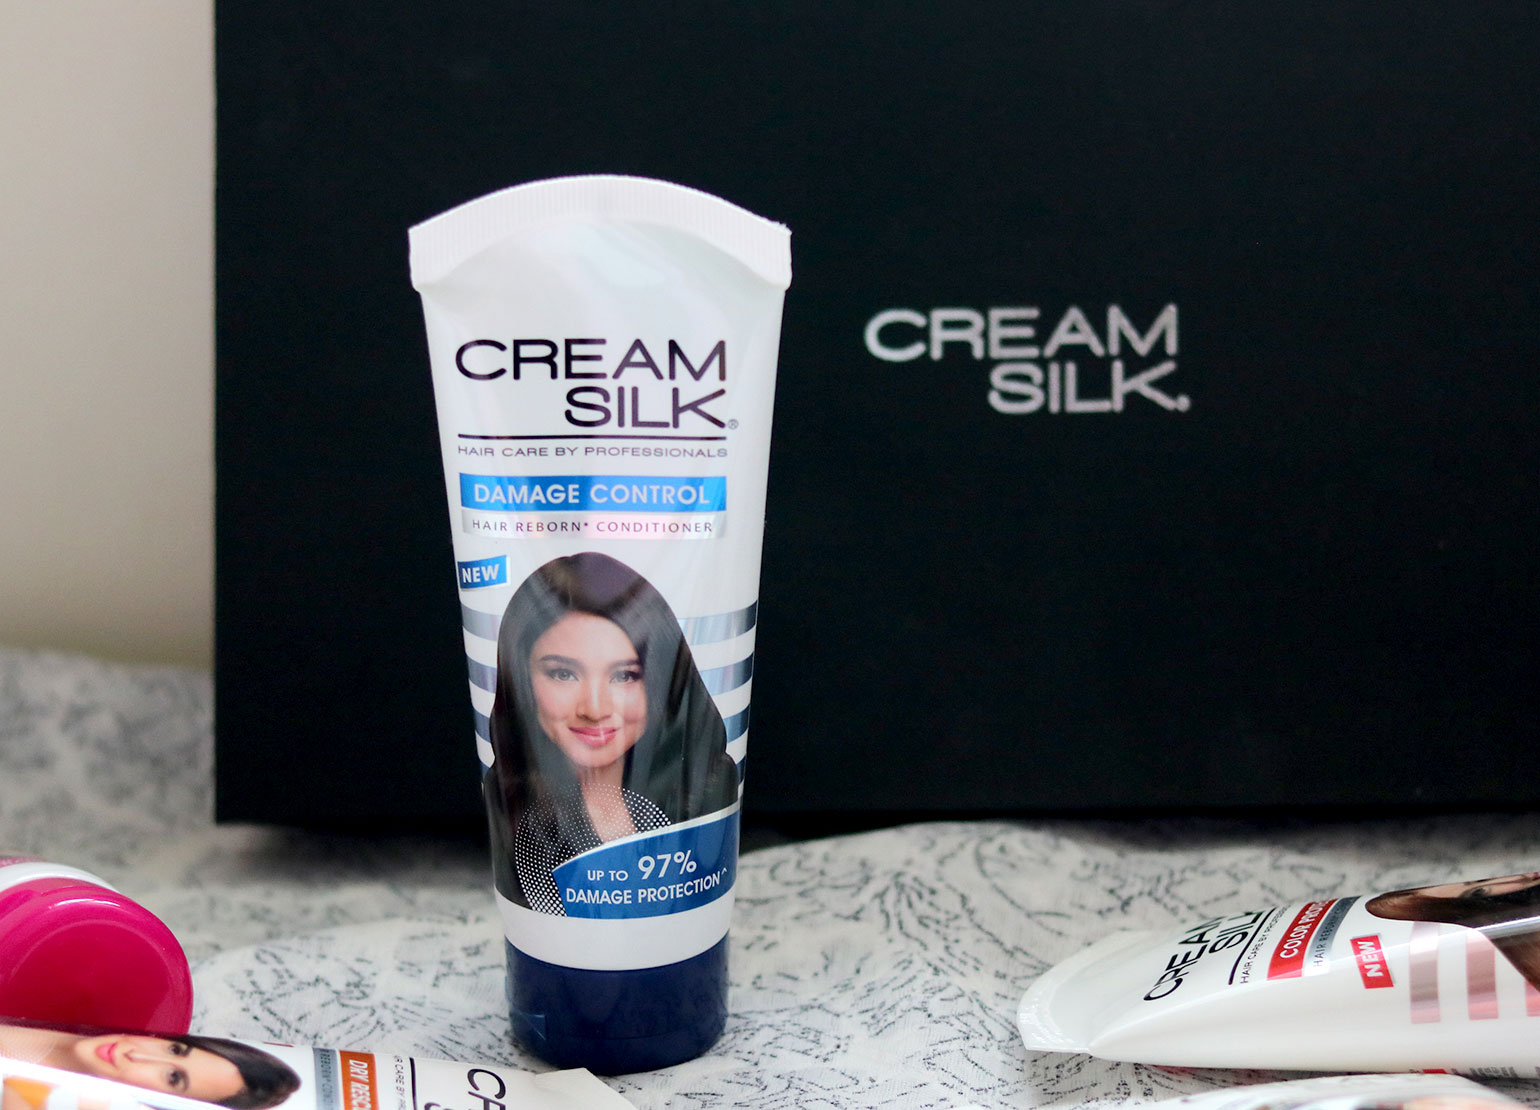 5 Cream Silk Power To Transform Customized Solutions Review Photos - Gen-zel She Sings Beauty